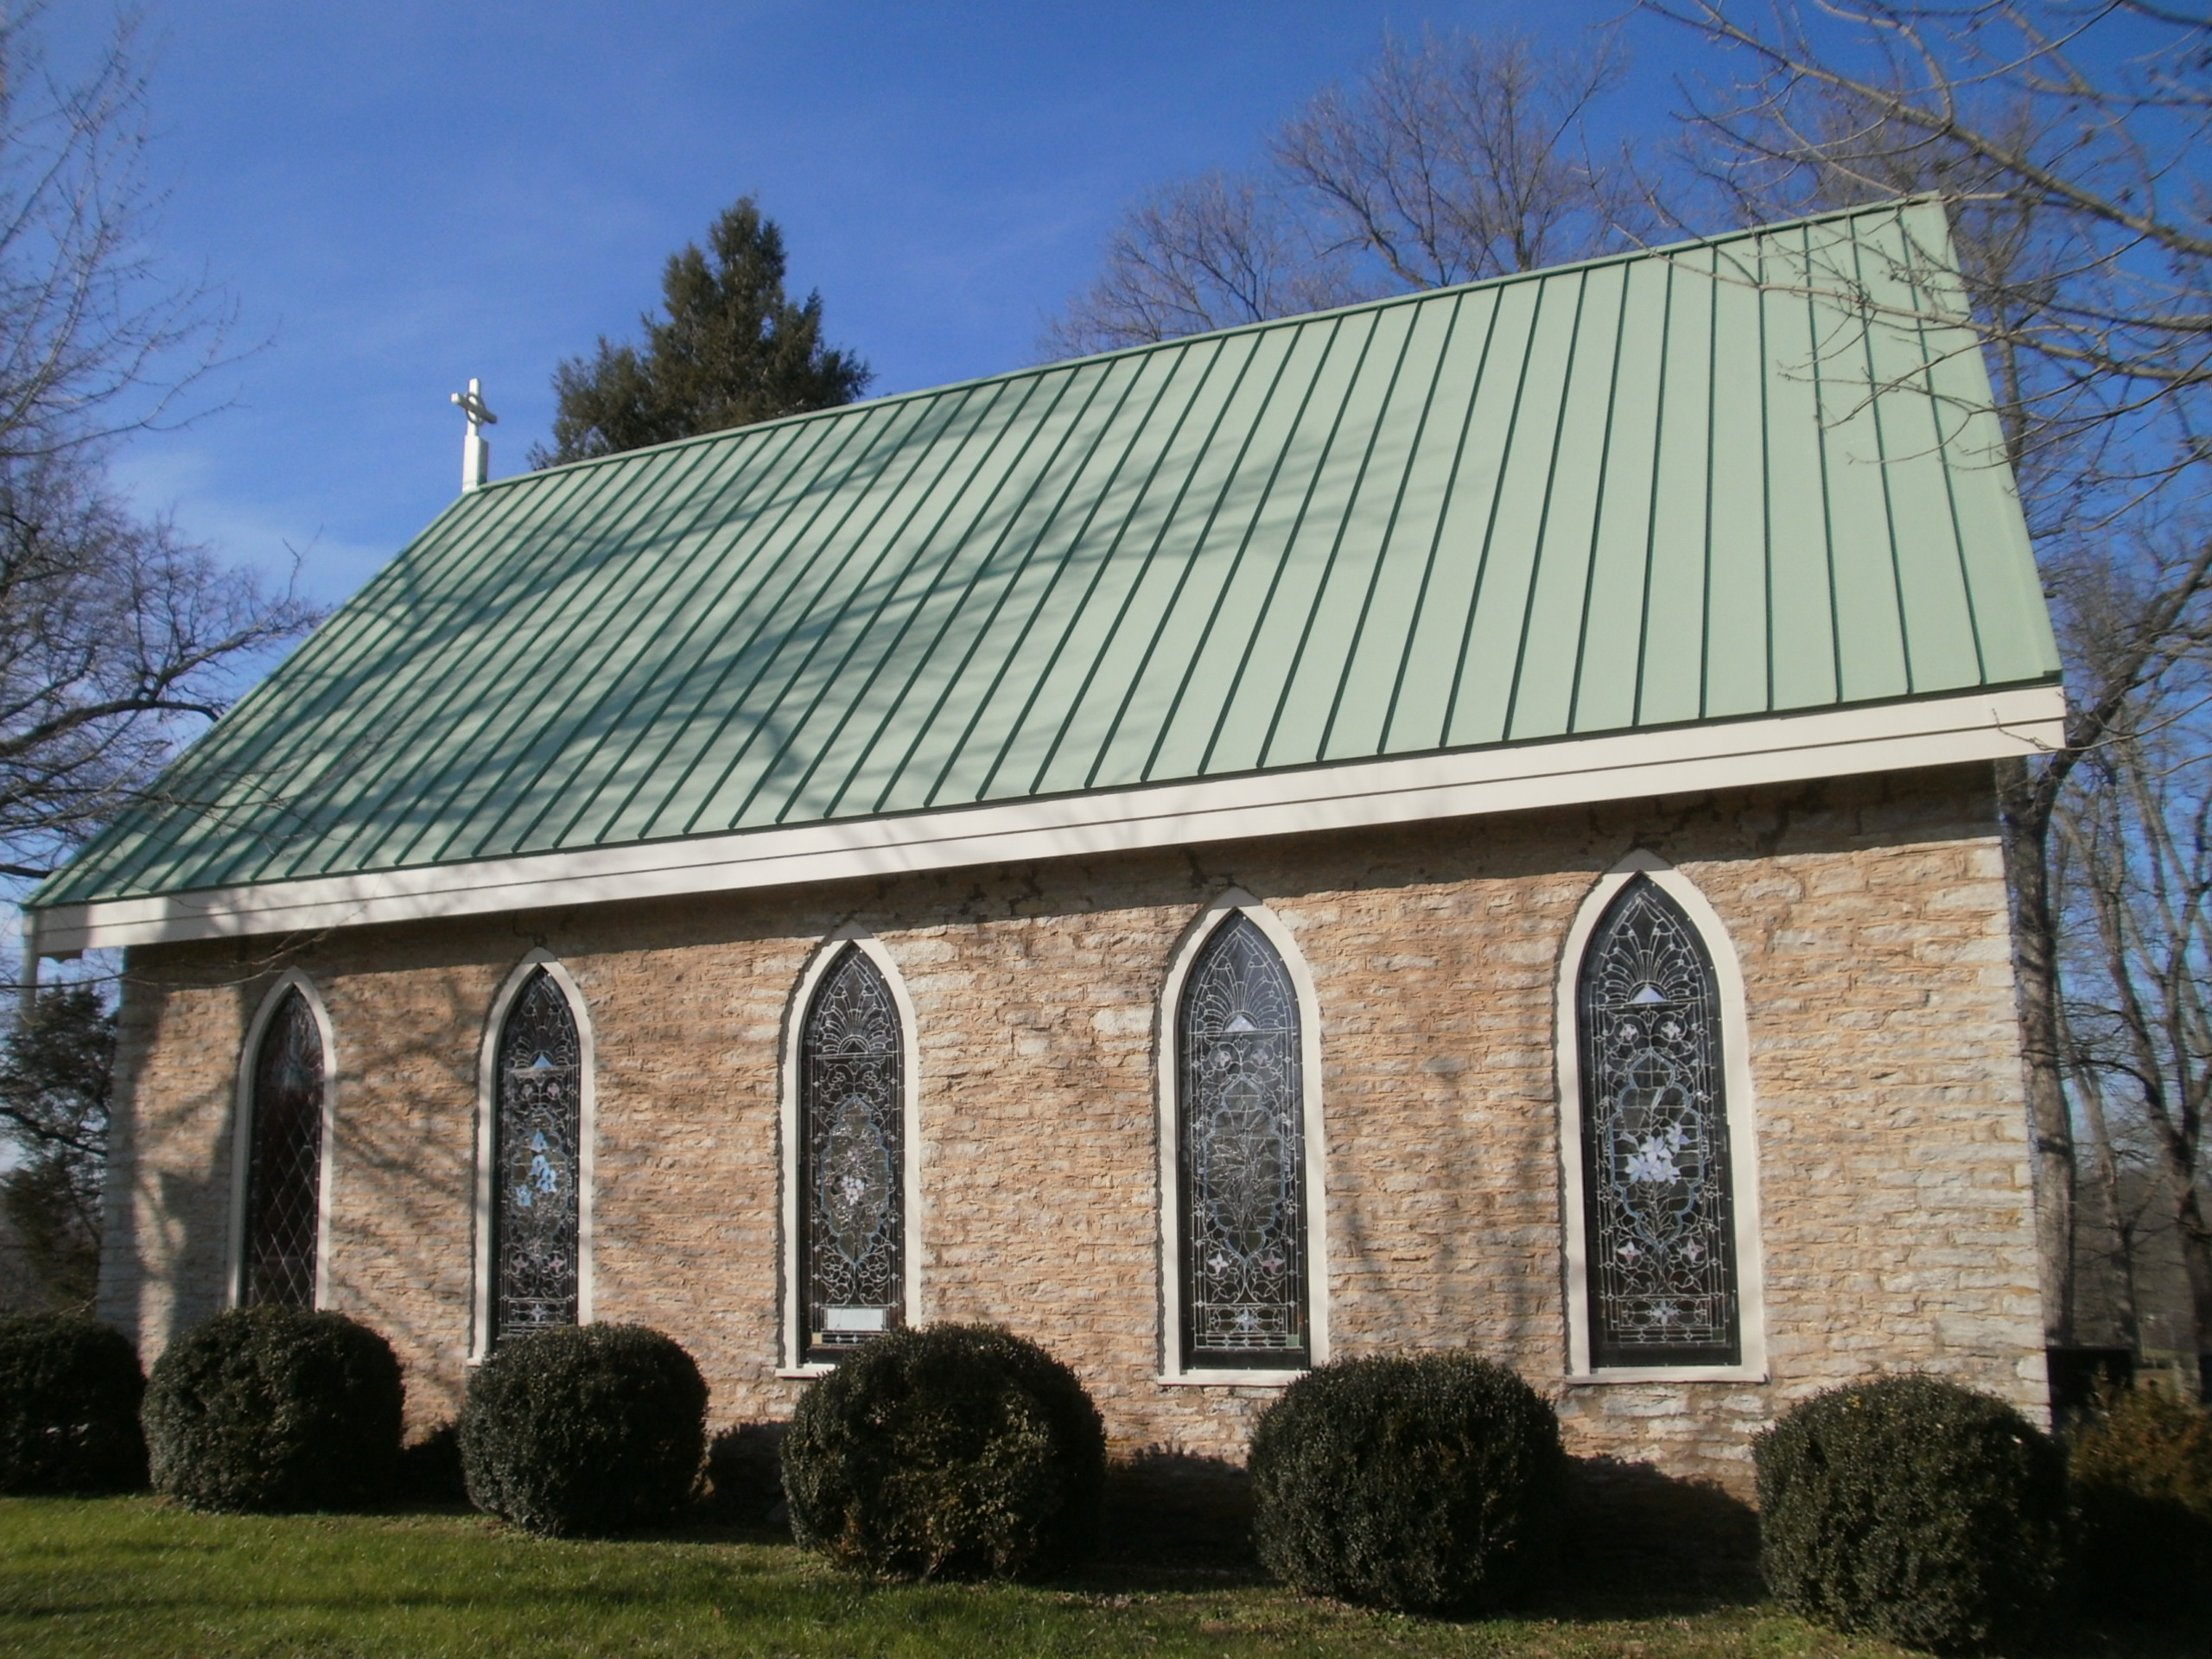 Church roof replaced with a new standing seam metal roof.